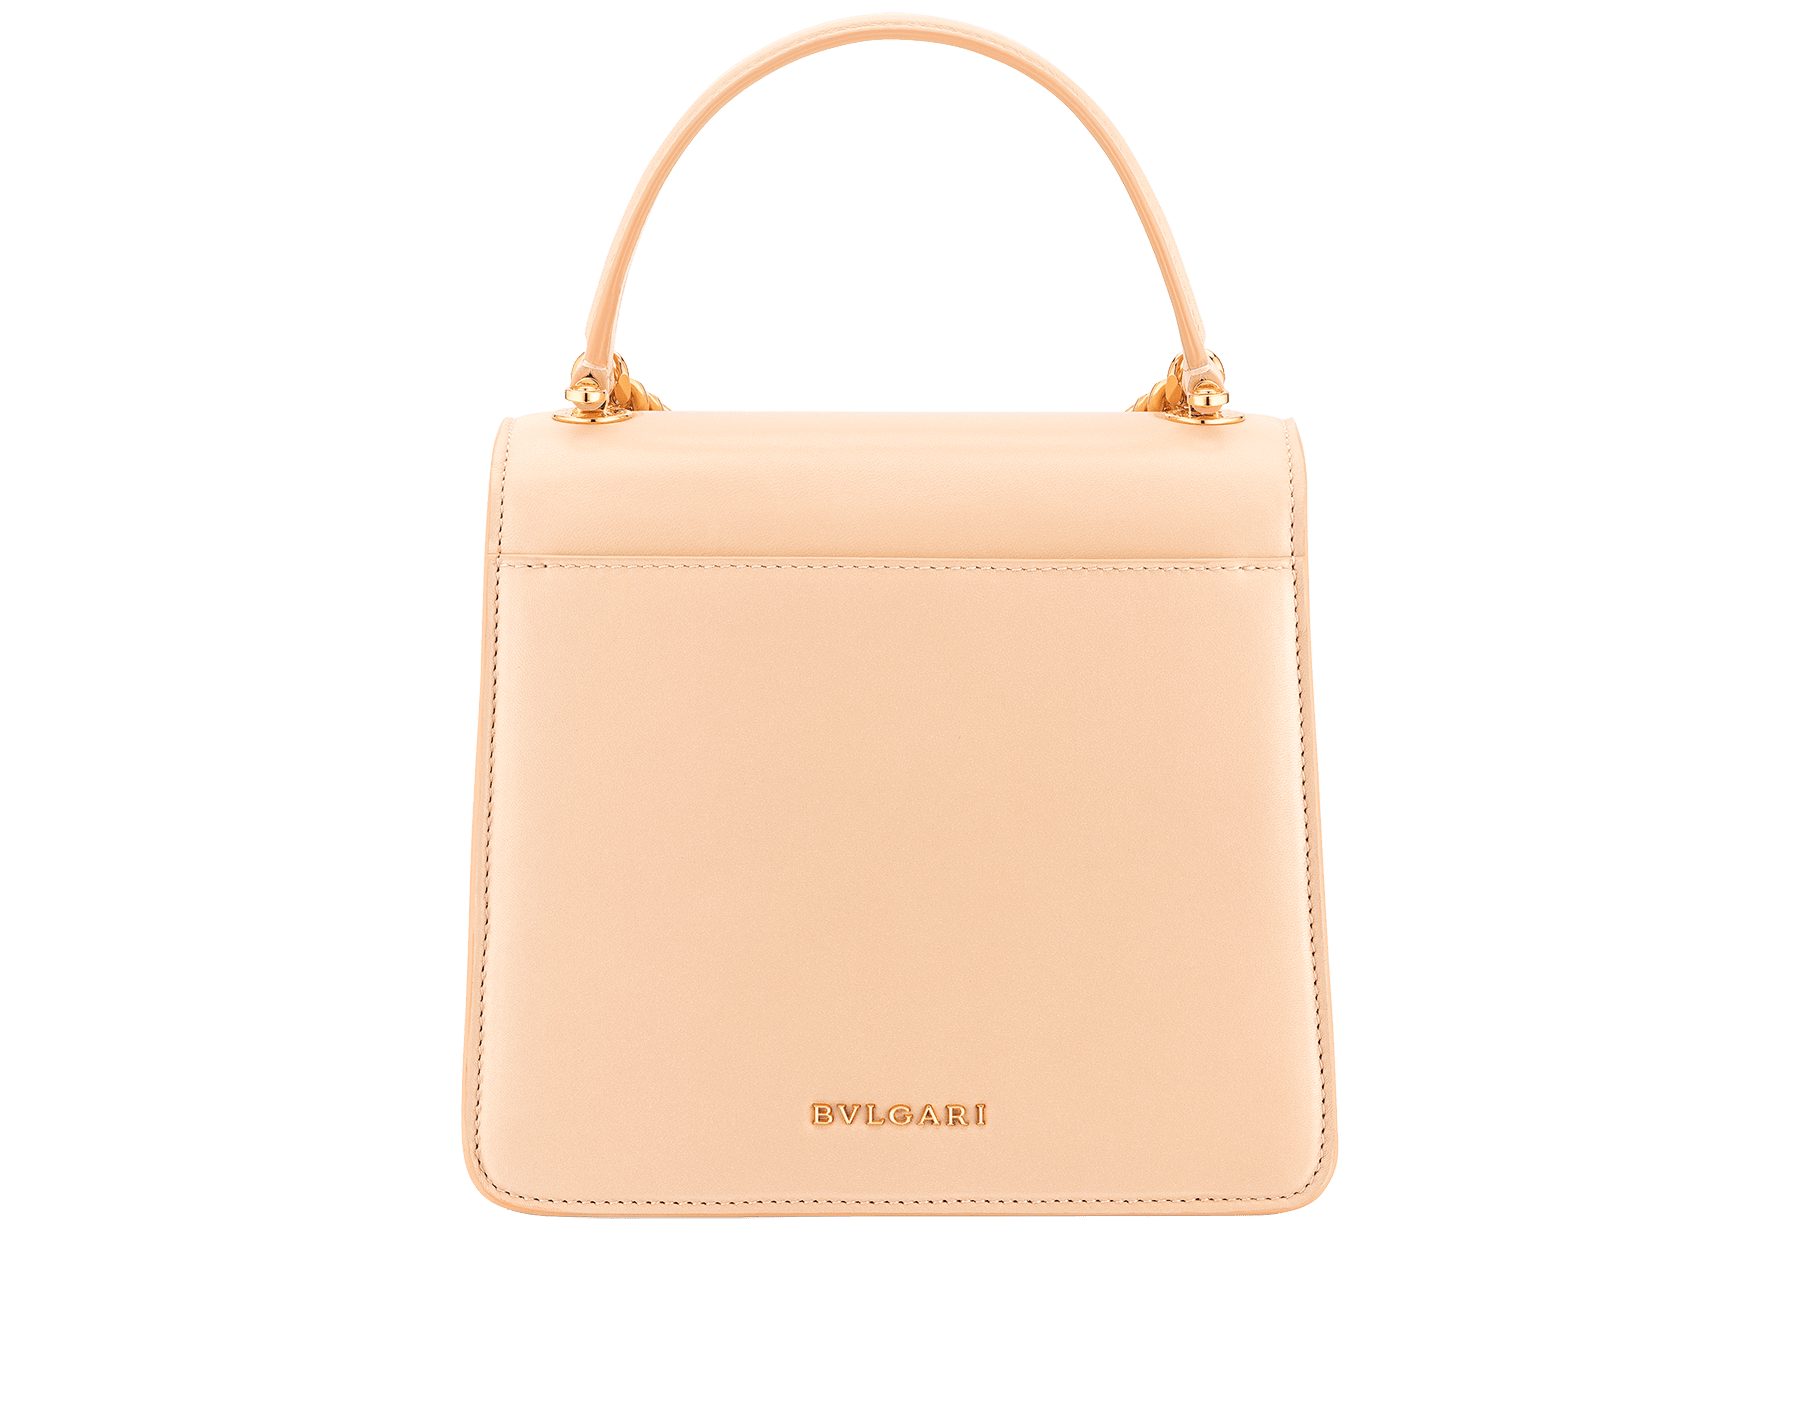 """""""Serpenti Forever"""" small maxi chain top handle bag in peach nappa leather, with Lavender Amethyst lilac nappa leather inner lining. New Serpenti head closure in gold-plated brass, finished with small pink mother-of-pearl scales in the middle and red enamel eyes. 1133-MCN image 3"""